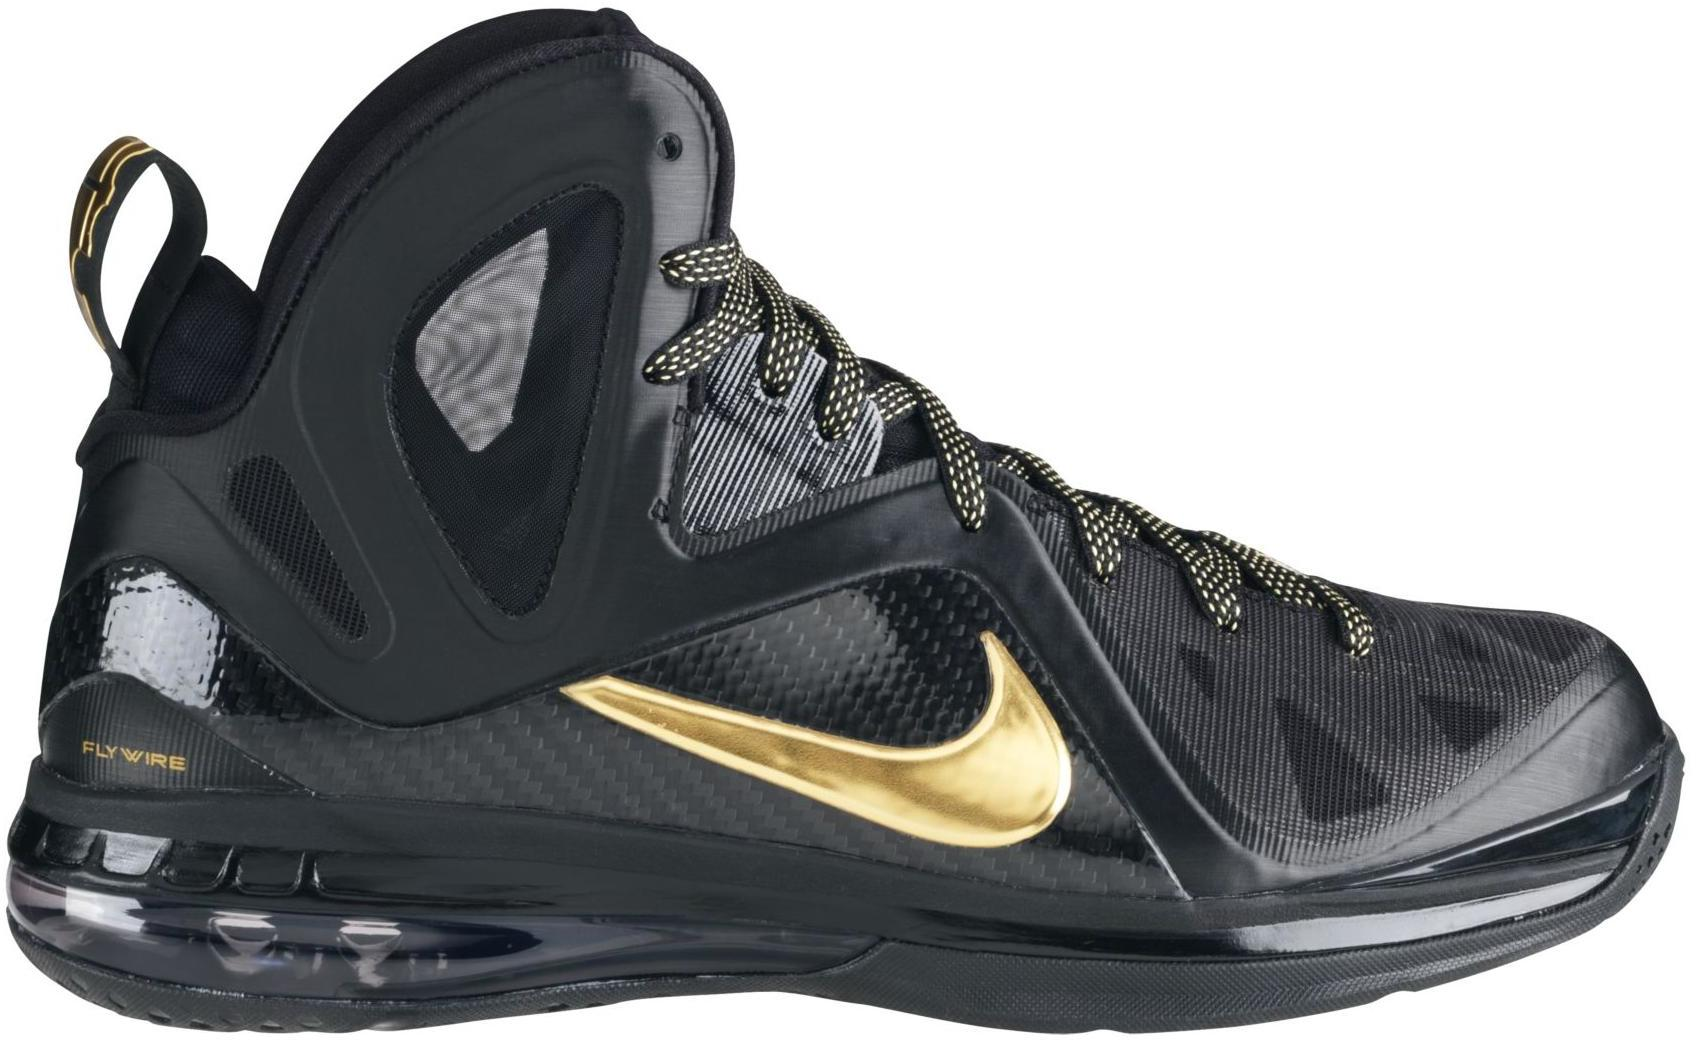 uk availability 6293b 75029 shop nike lebron 9 sneakernews 8388d edce1  new style lebron 9 ps elite  away 72d03 2eeec